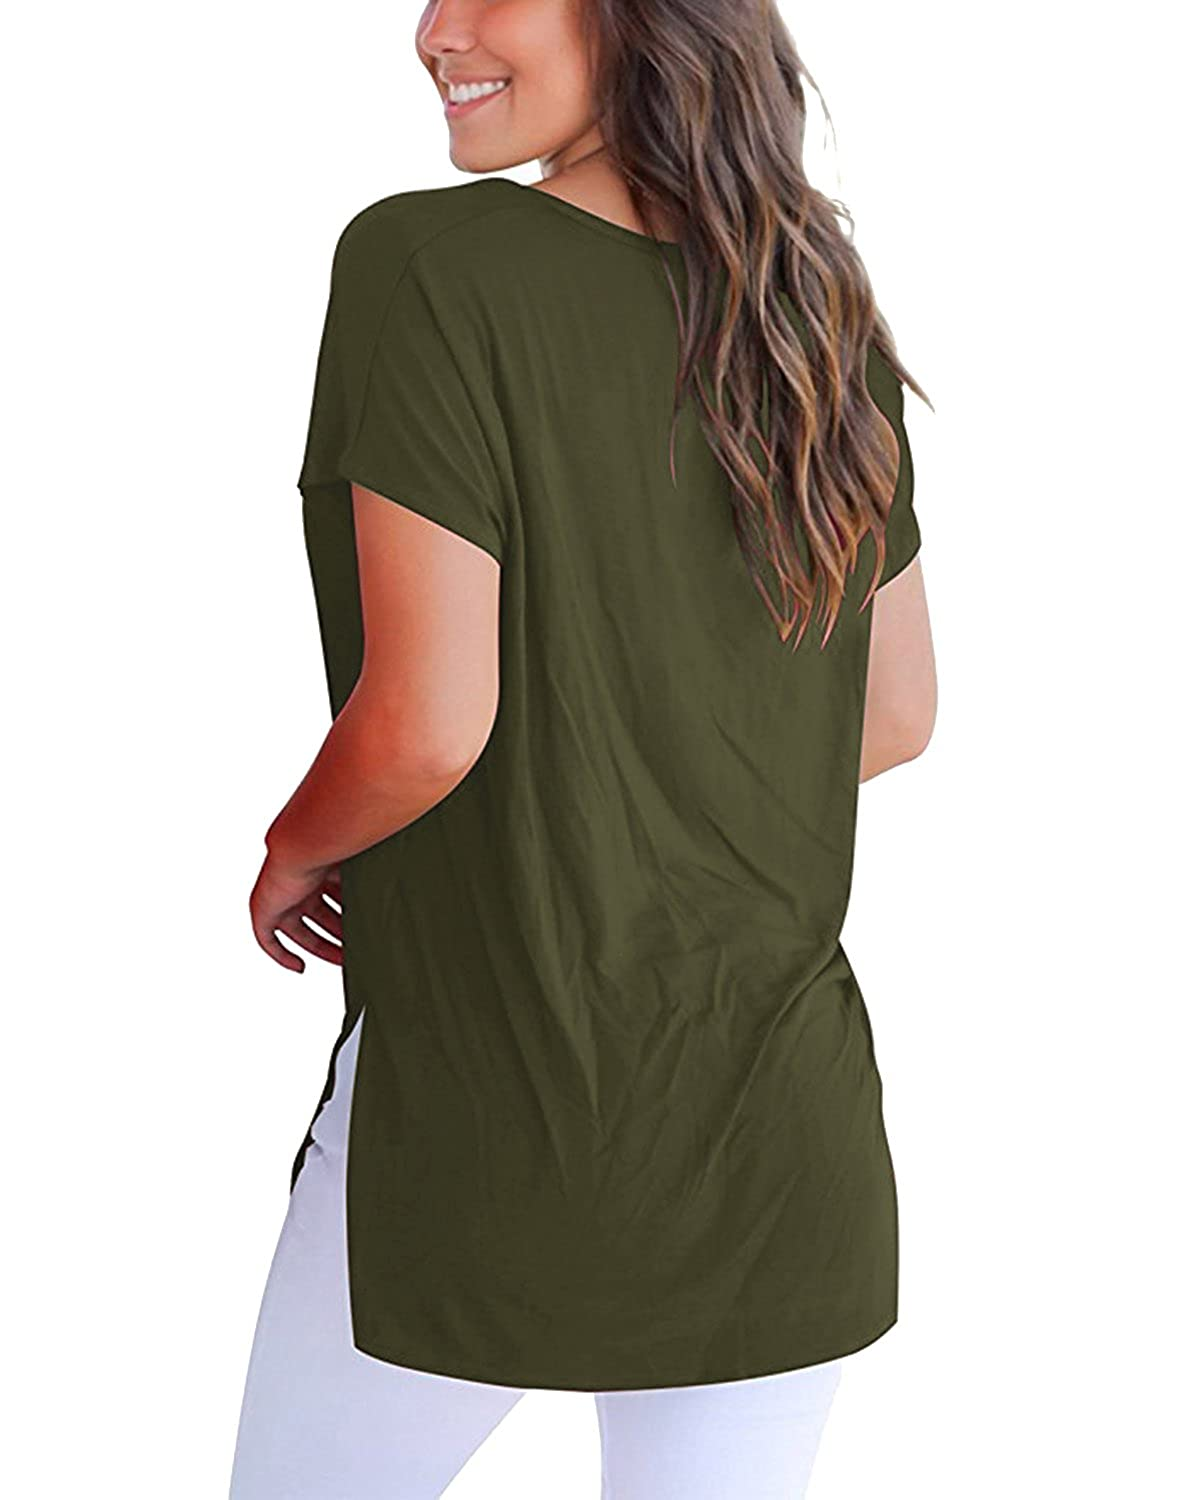 StyleDome Womens High Low Loose T Shirt Basic Tee Tops with Side Split Casual Shirts Blouse